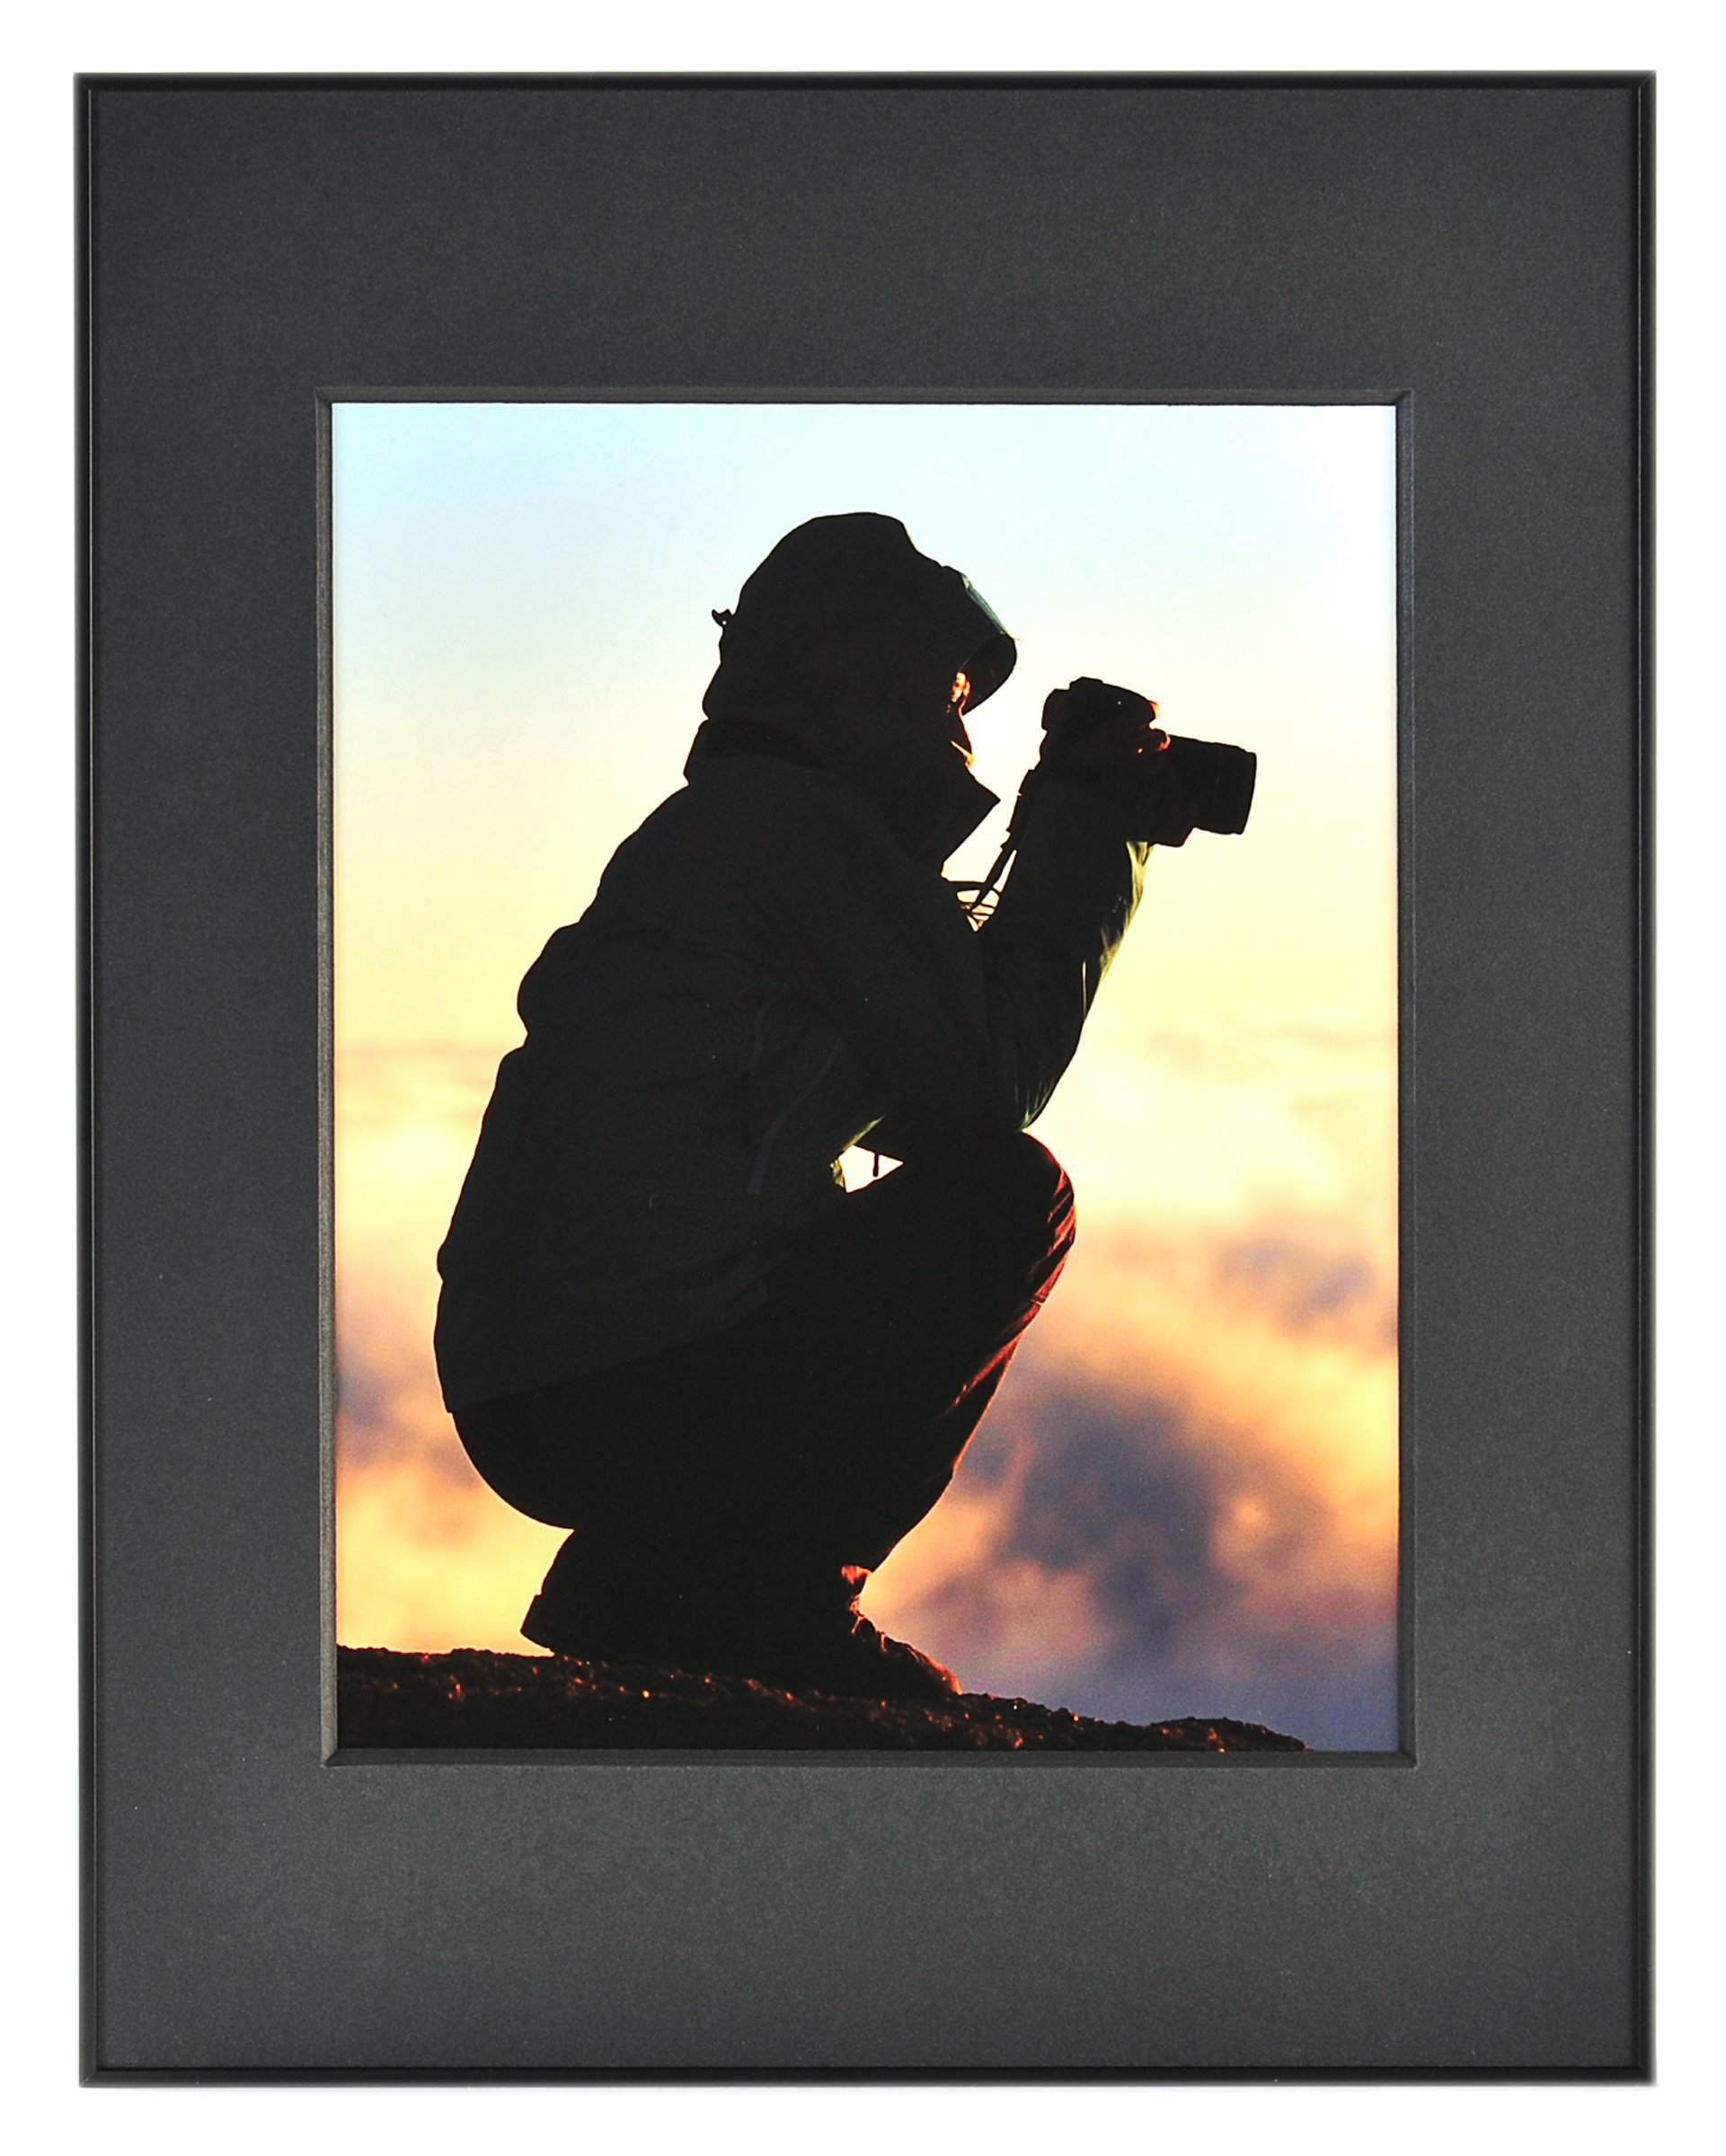 Nielsen Bainbridge Artcare By 11x14 Black Archival Photography Collection Frame With Black Mat For 8x10 Image #RPH1321FB. Includes: UV Glazed Glass and Anti Aging Liner